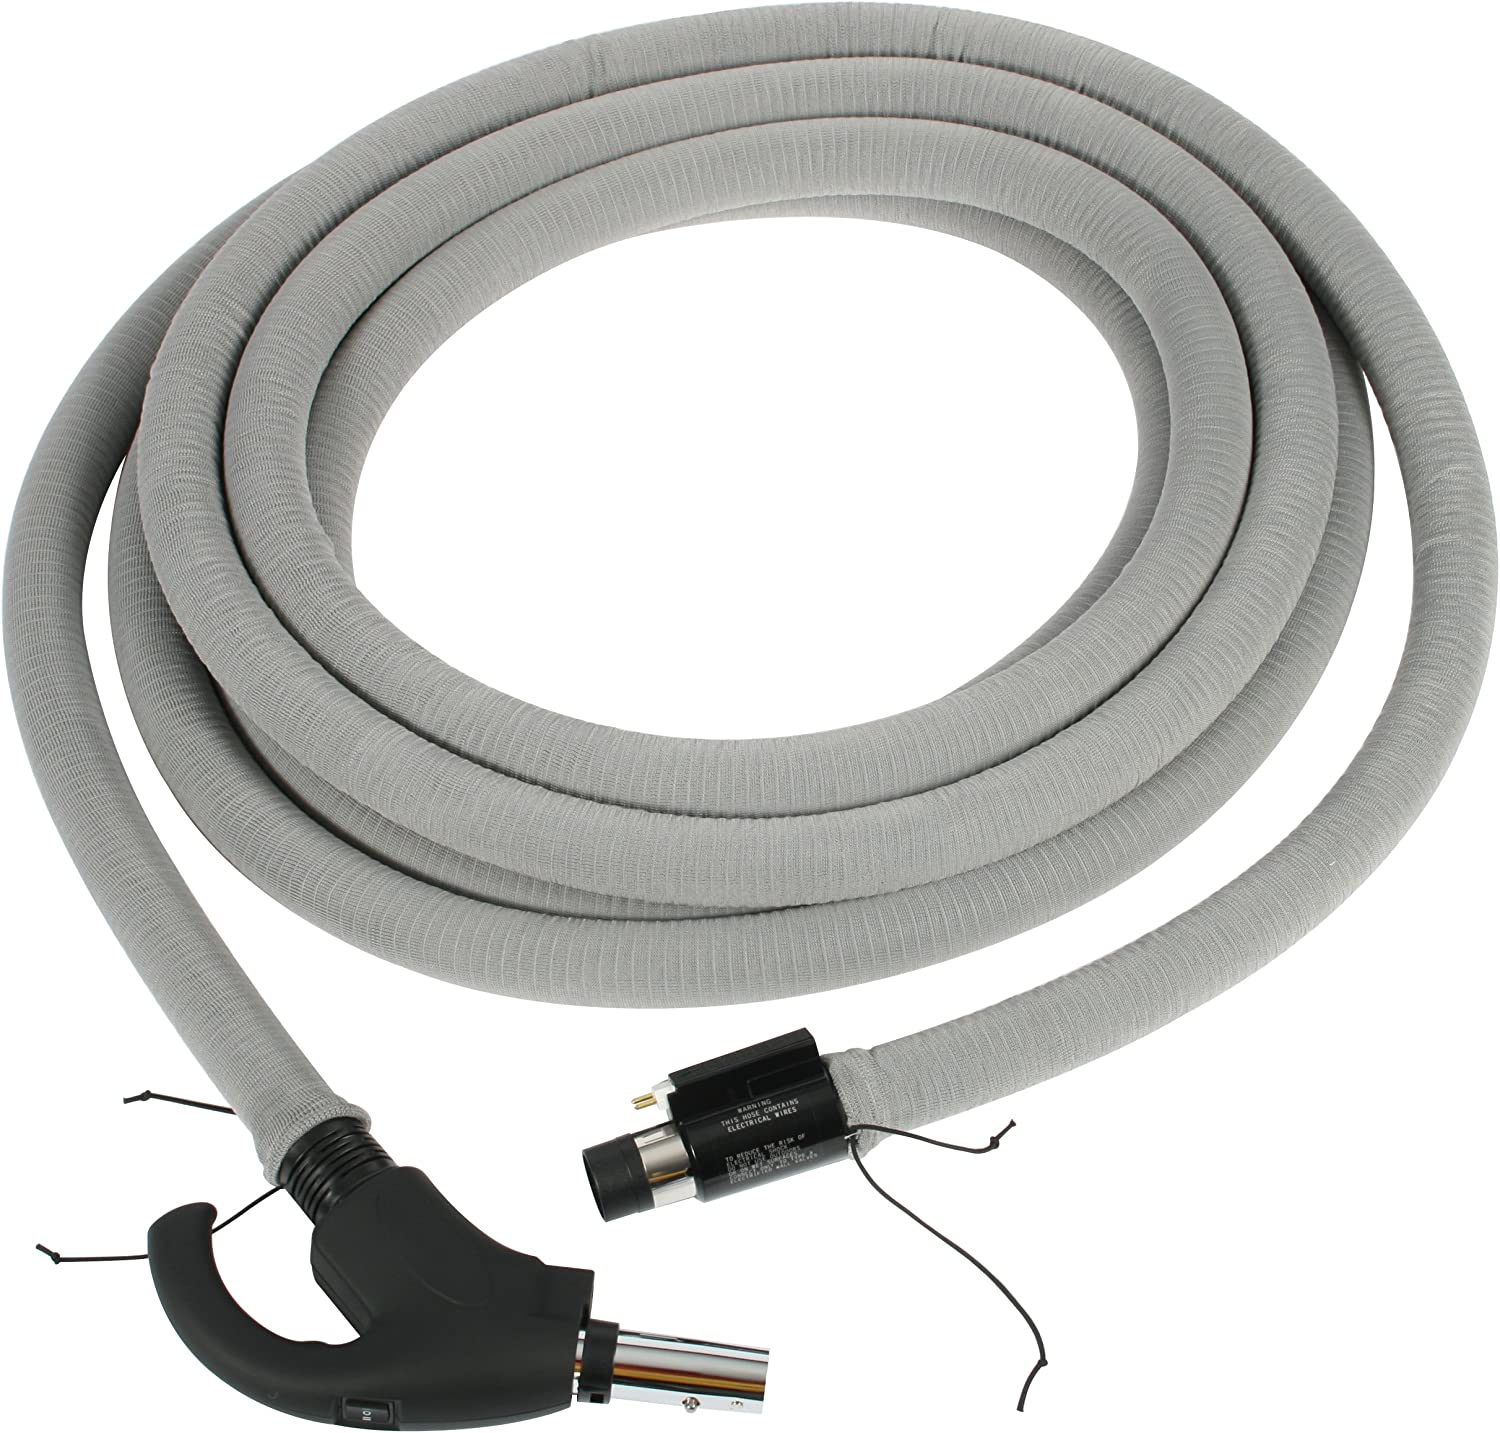 Cen-Tec Systems 90177 Central Vacuum 35 Feet Direct Connect Electric Hose with Hose Sock and Locking Stub Tube